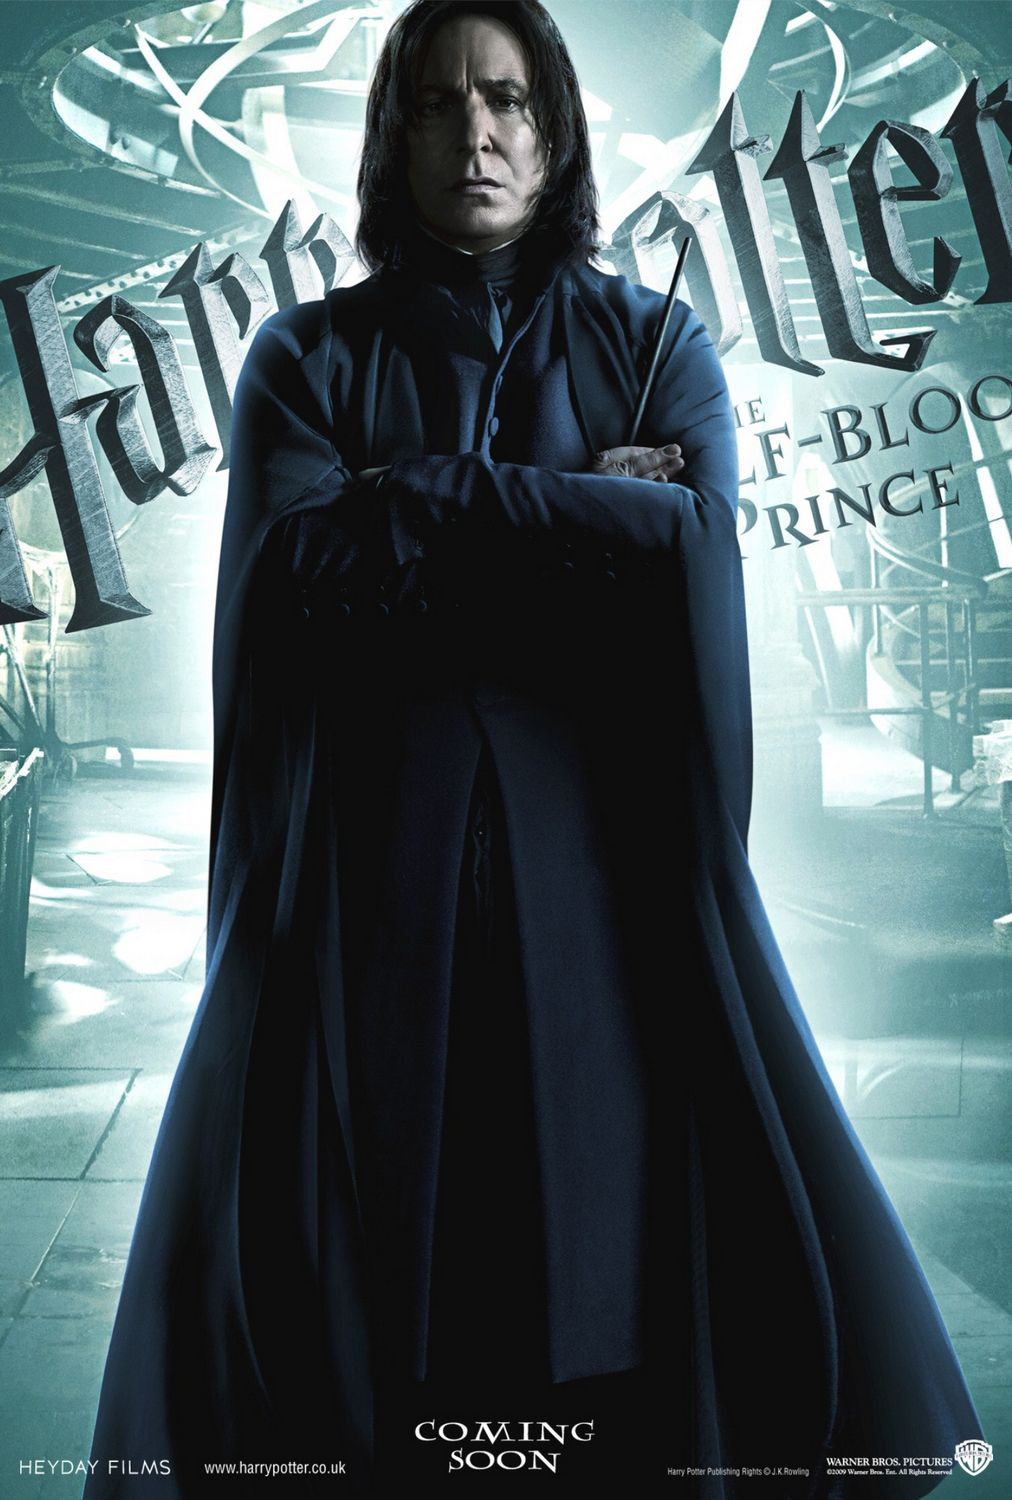 'Half-Blood Prince' Snape poster